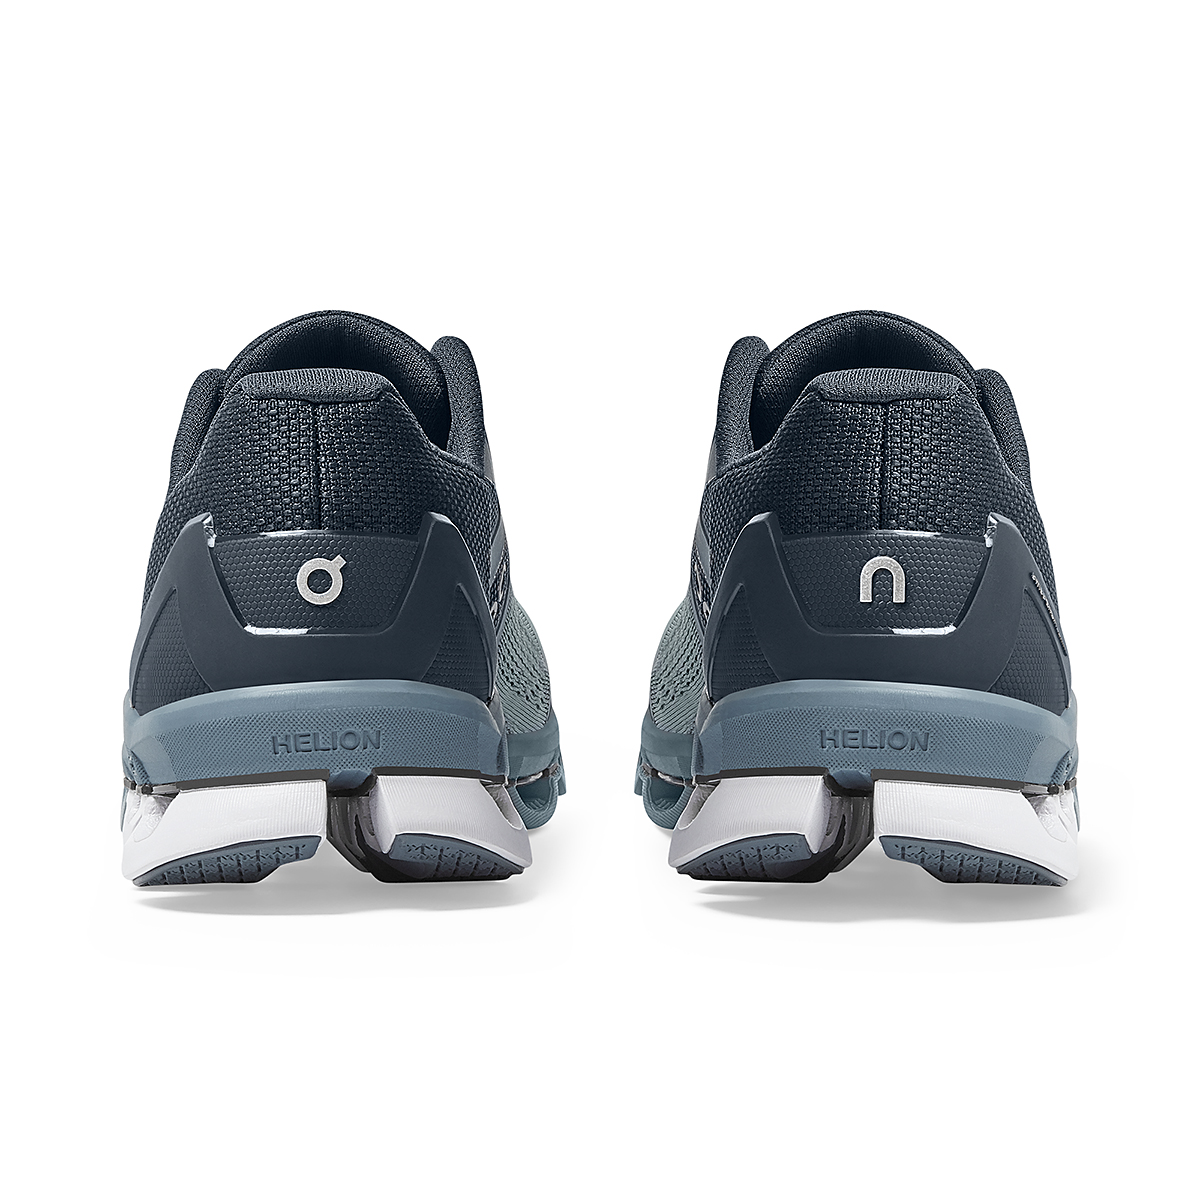 Women's On Cloudace Running Shoe - Color: Wash   Navy - Size: 6.5 - Width: Regular, Wash   Navy, large, image 6